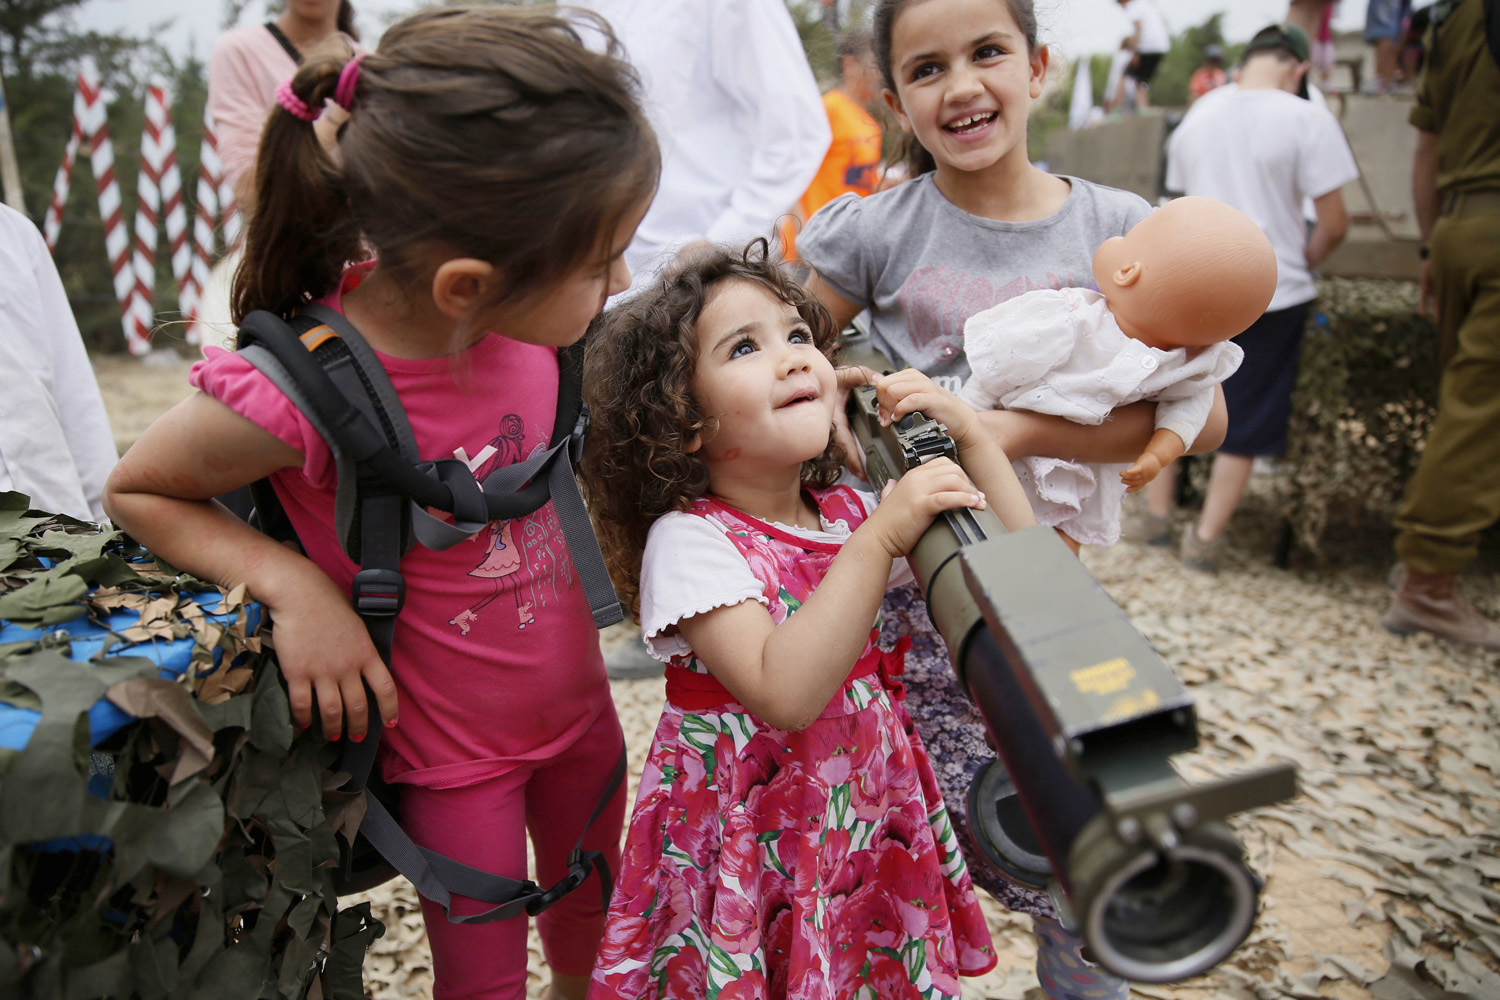 An Israeli child holds a rocket launcher during a traditional military weapon display to mark the 66th anniversary of Israel's Independence at the West Bank settlement of Efrat near the biblical city of Bethlehem on May 6, 2014.